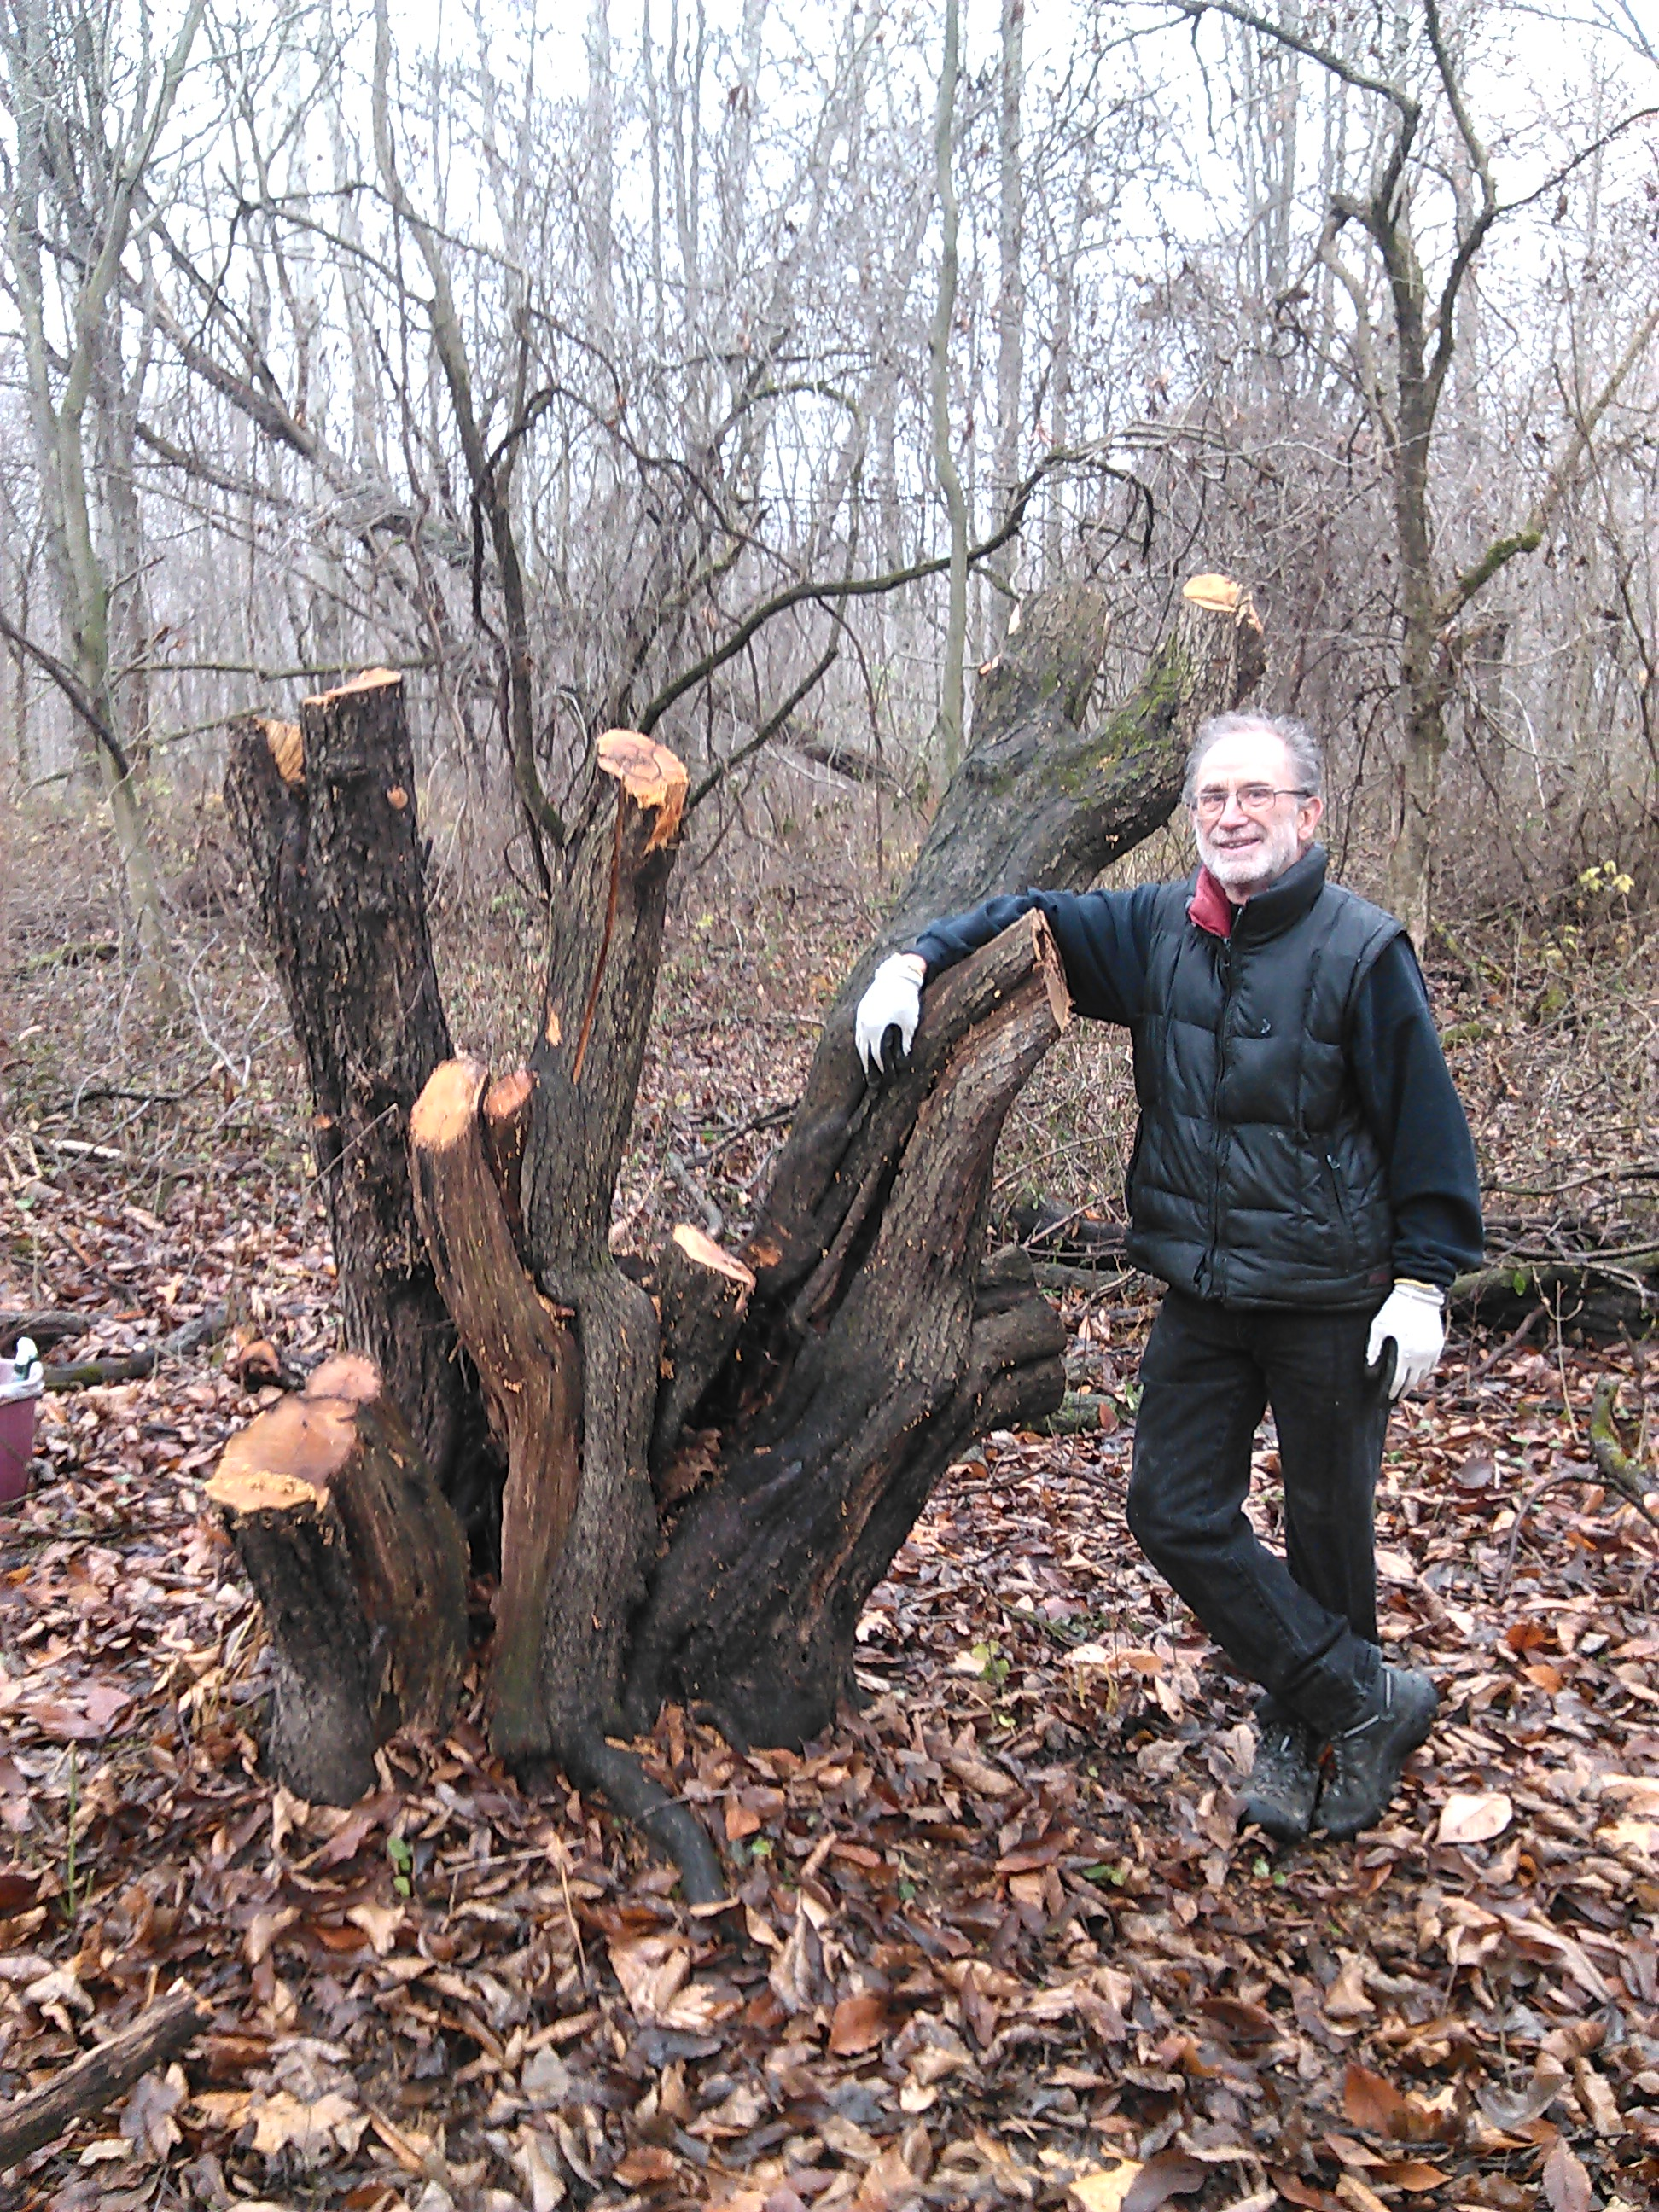 Mick with cut Buckthorn